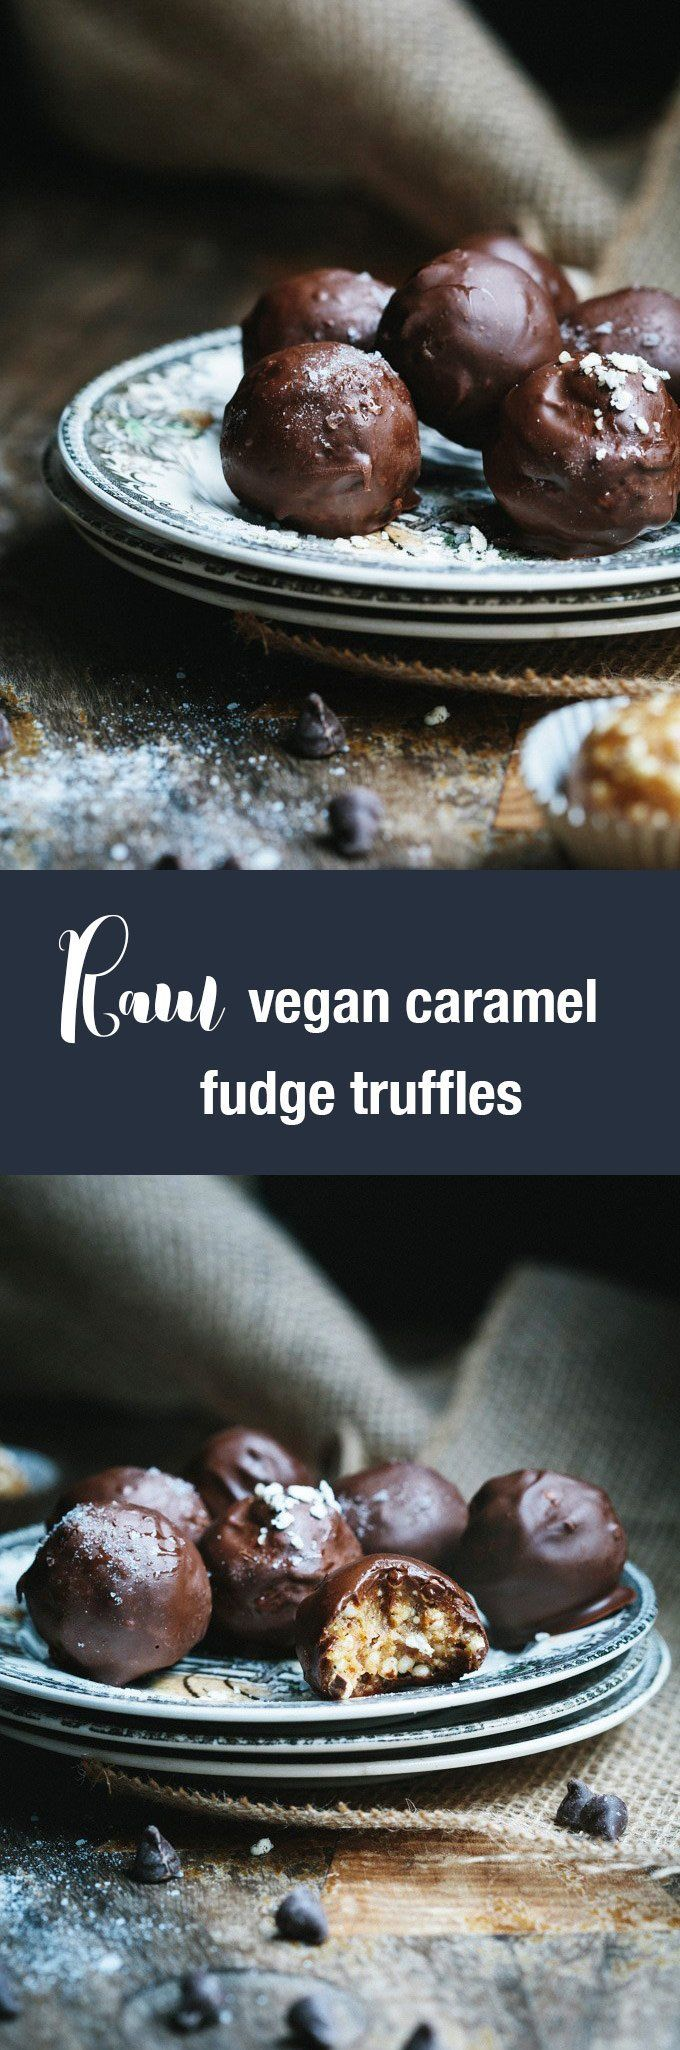 This raw caramel vegan fudge truffles recipe swaps out the junk found in most commercial chocolate bars for sticky, sweet dates, cashew butter and millet crisps. And they are simply wonderful.